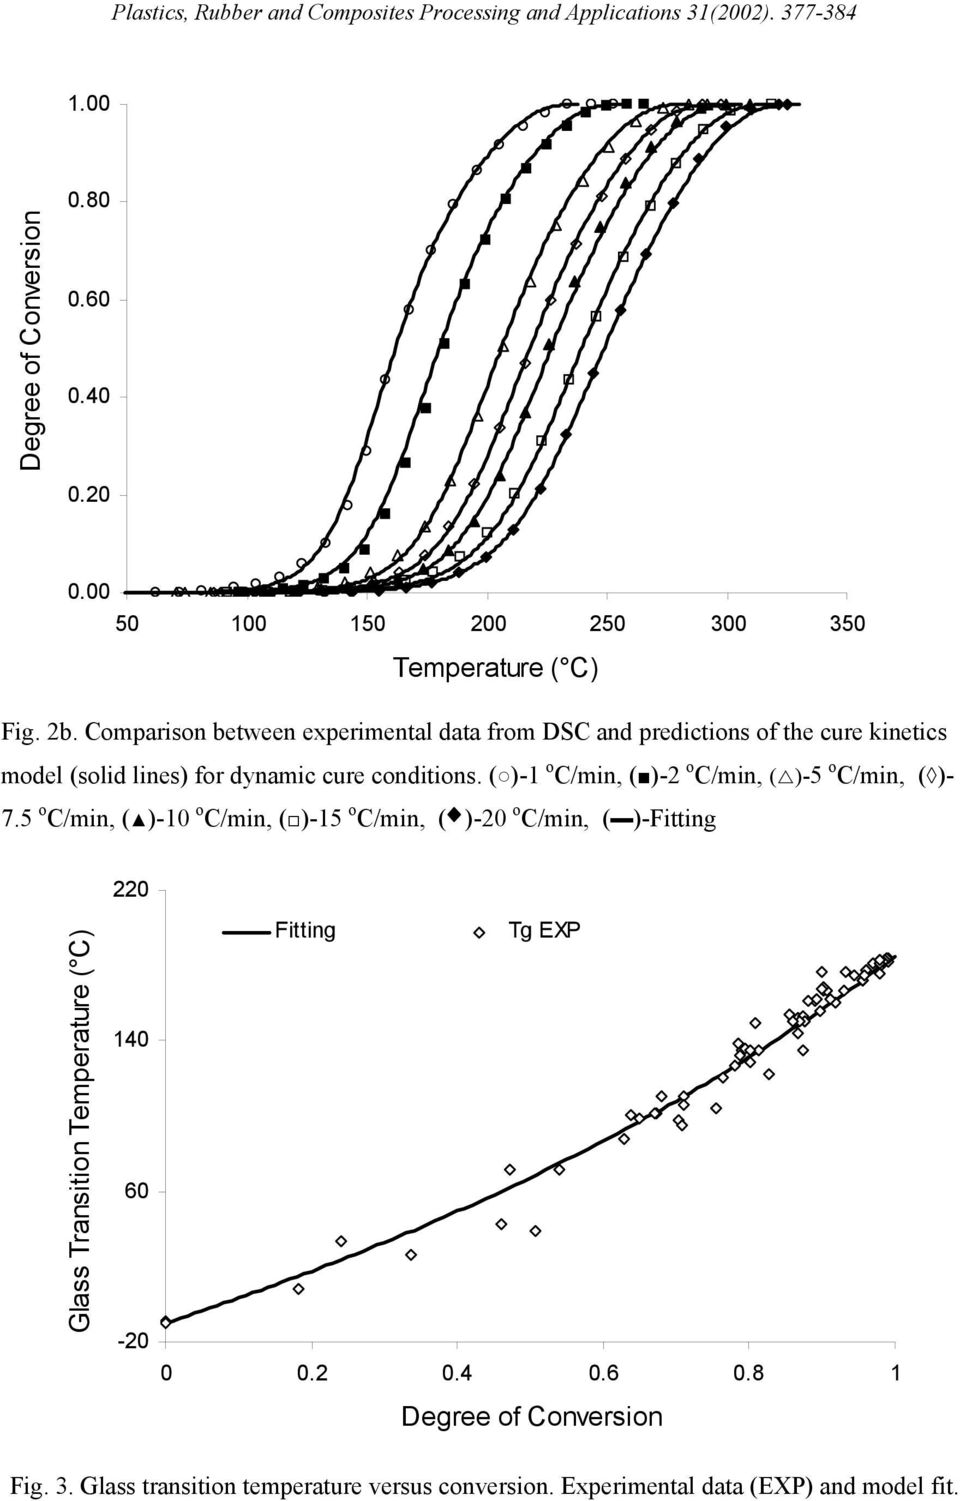 Comparison between experimental data from DSC and predictions of the cure kinetics model (solid lines) for dynamic cure conditions.